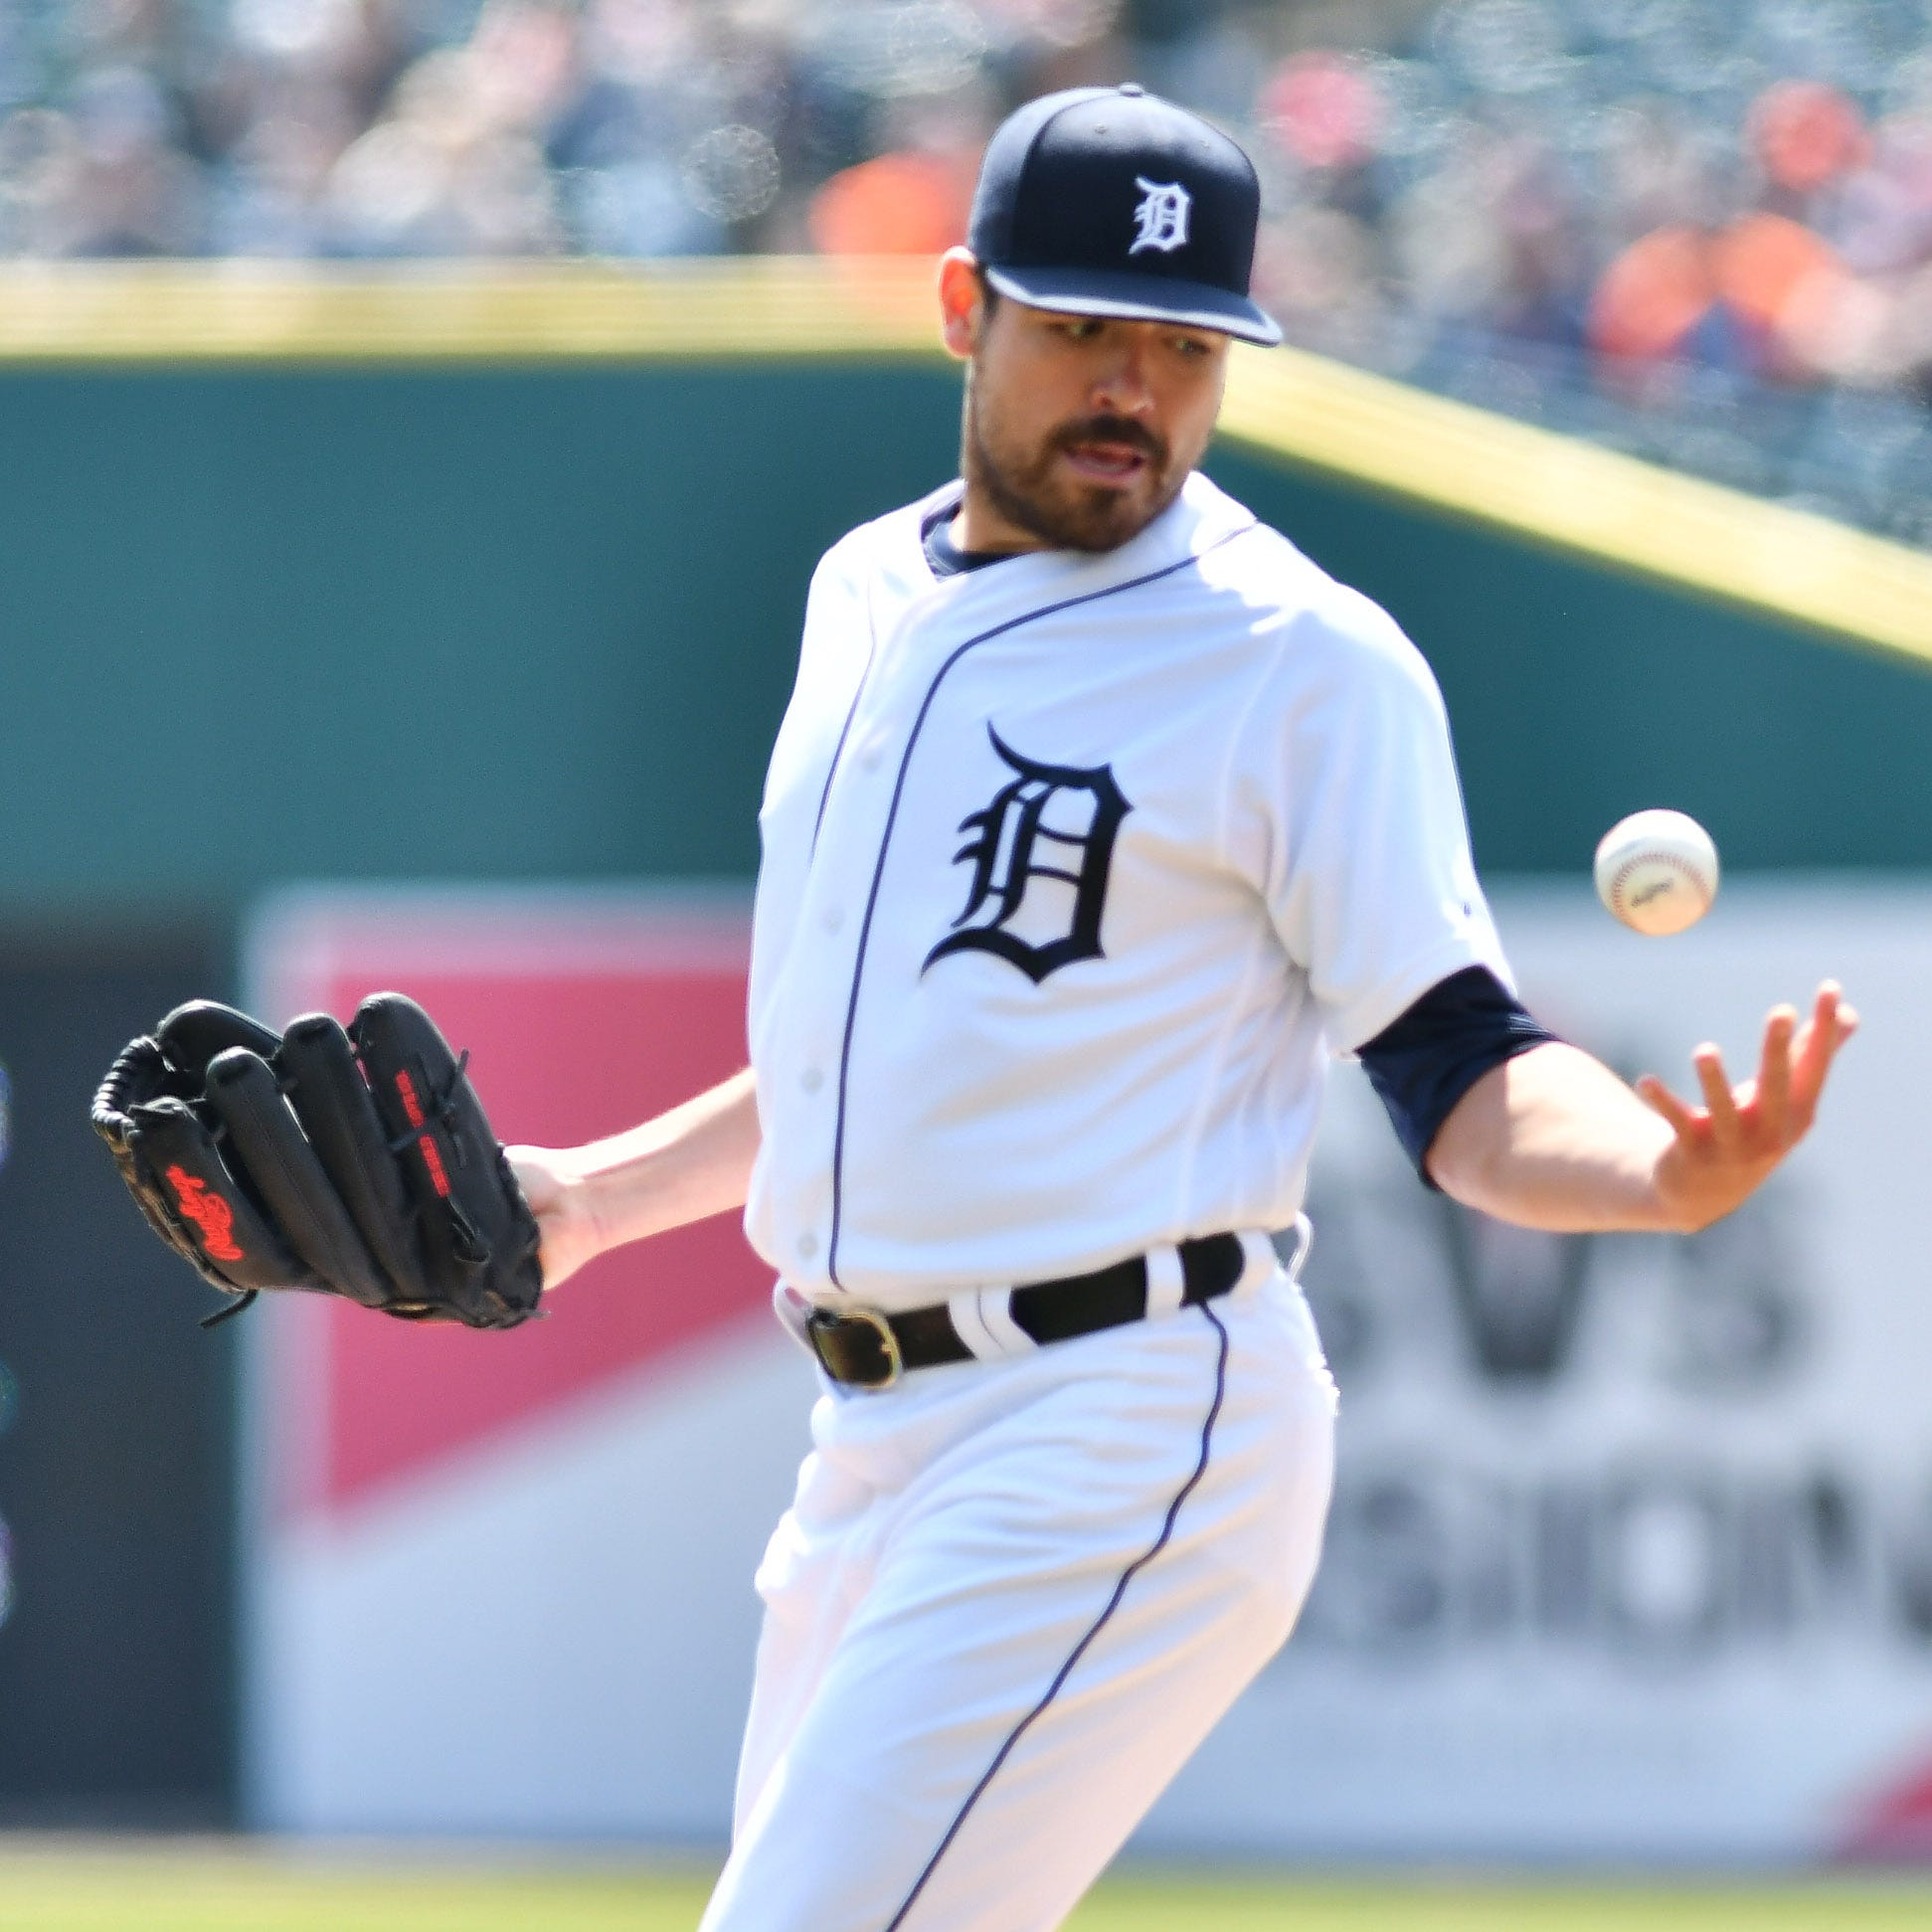 Moore will be placed on IL, Daniel Norris moves into Tigers rotation